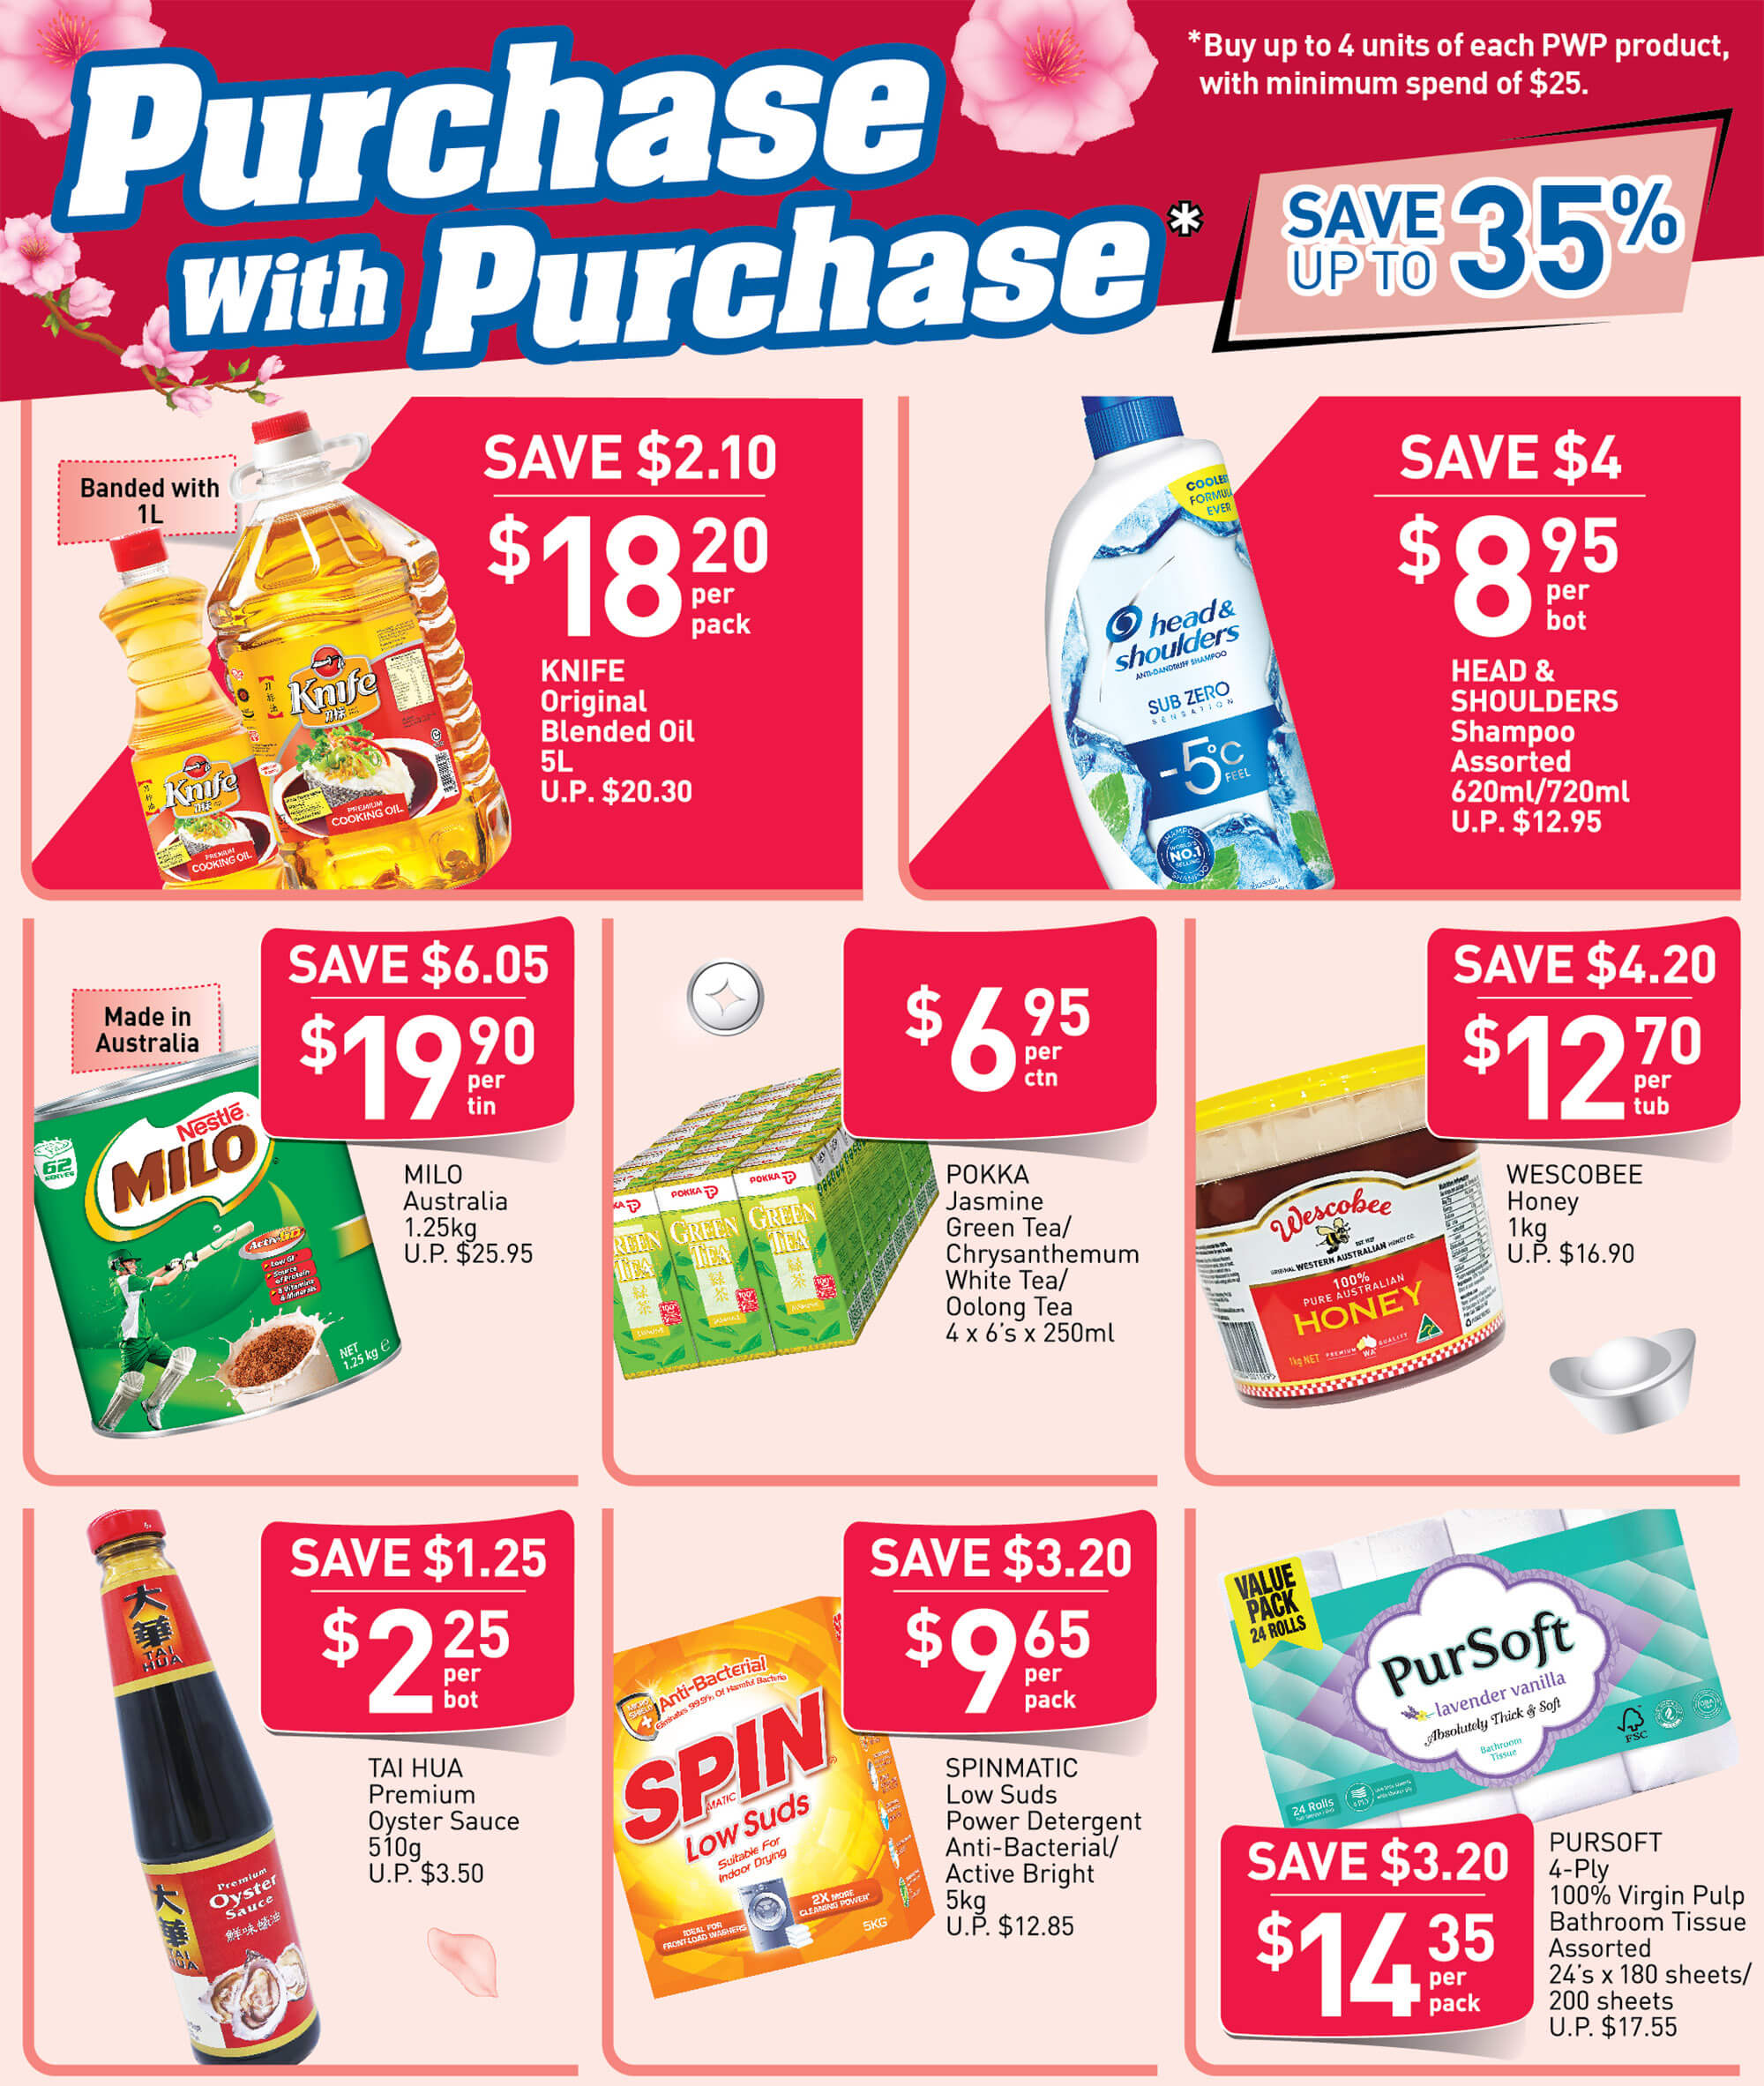 NTUC FairPrice SG Your Weekly Saver Promotions 9-15 Jan 2020 | Why Not Deals 10 & Promotions